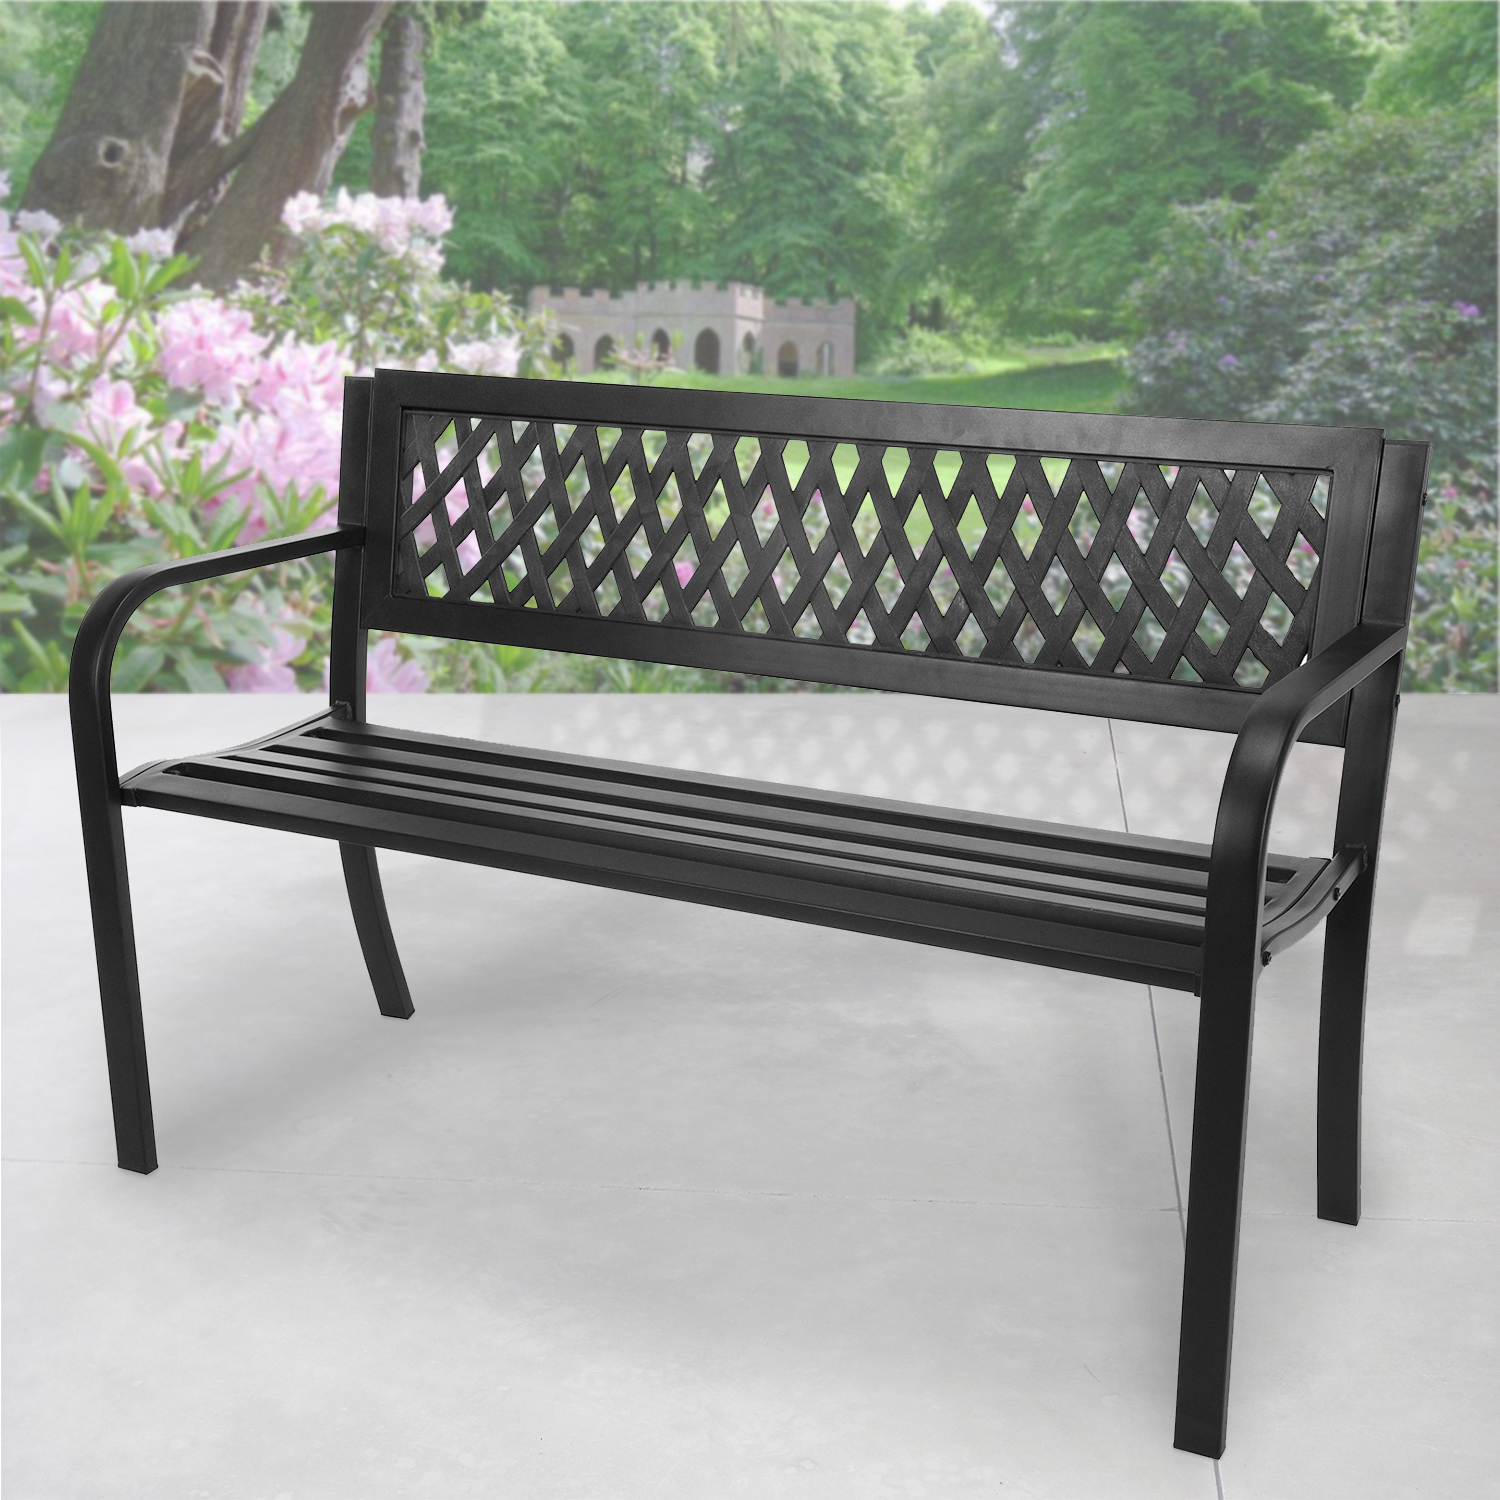 Enjoyable Details About 3 Seater Garden Bench Steel Outdoor Patio Metal Seat Park Seating Furniture Home Beatyapartments Chair Design Images Beatyapartmentscom